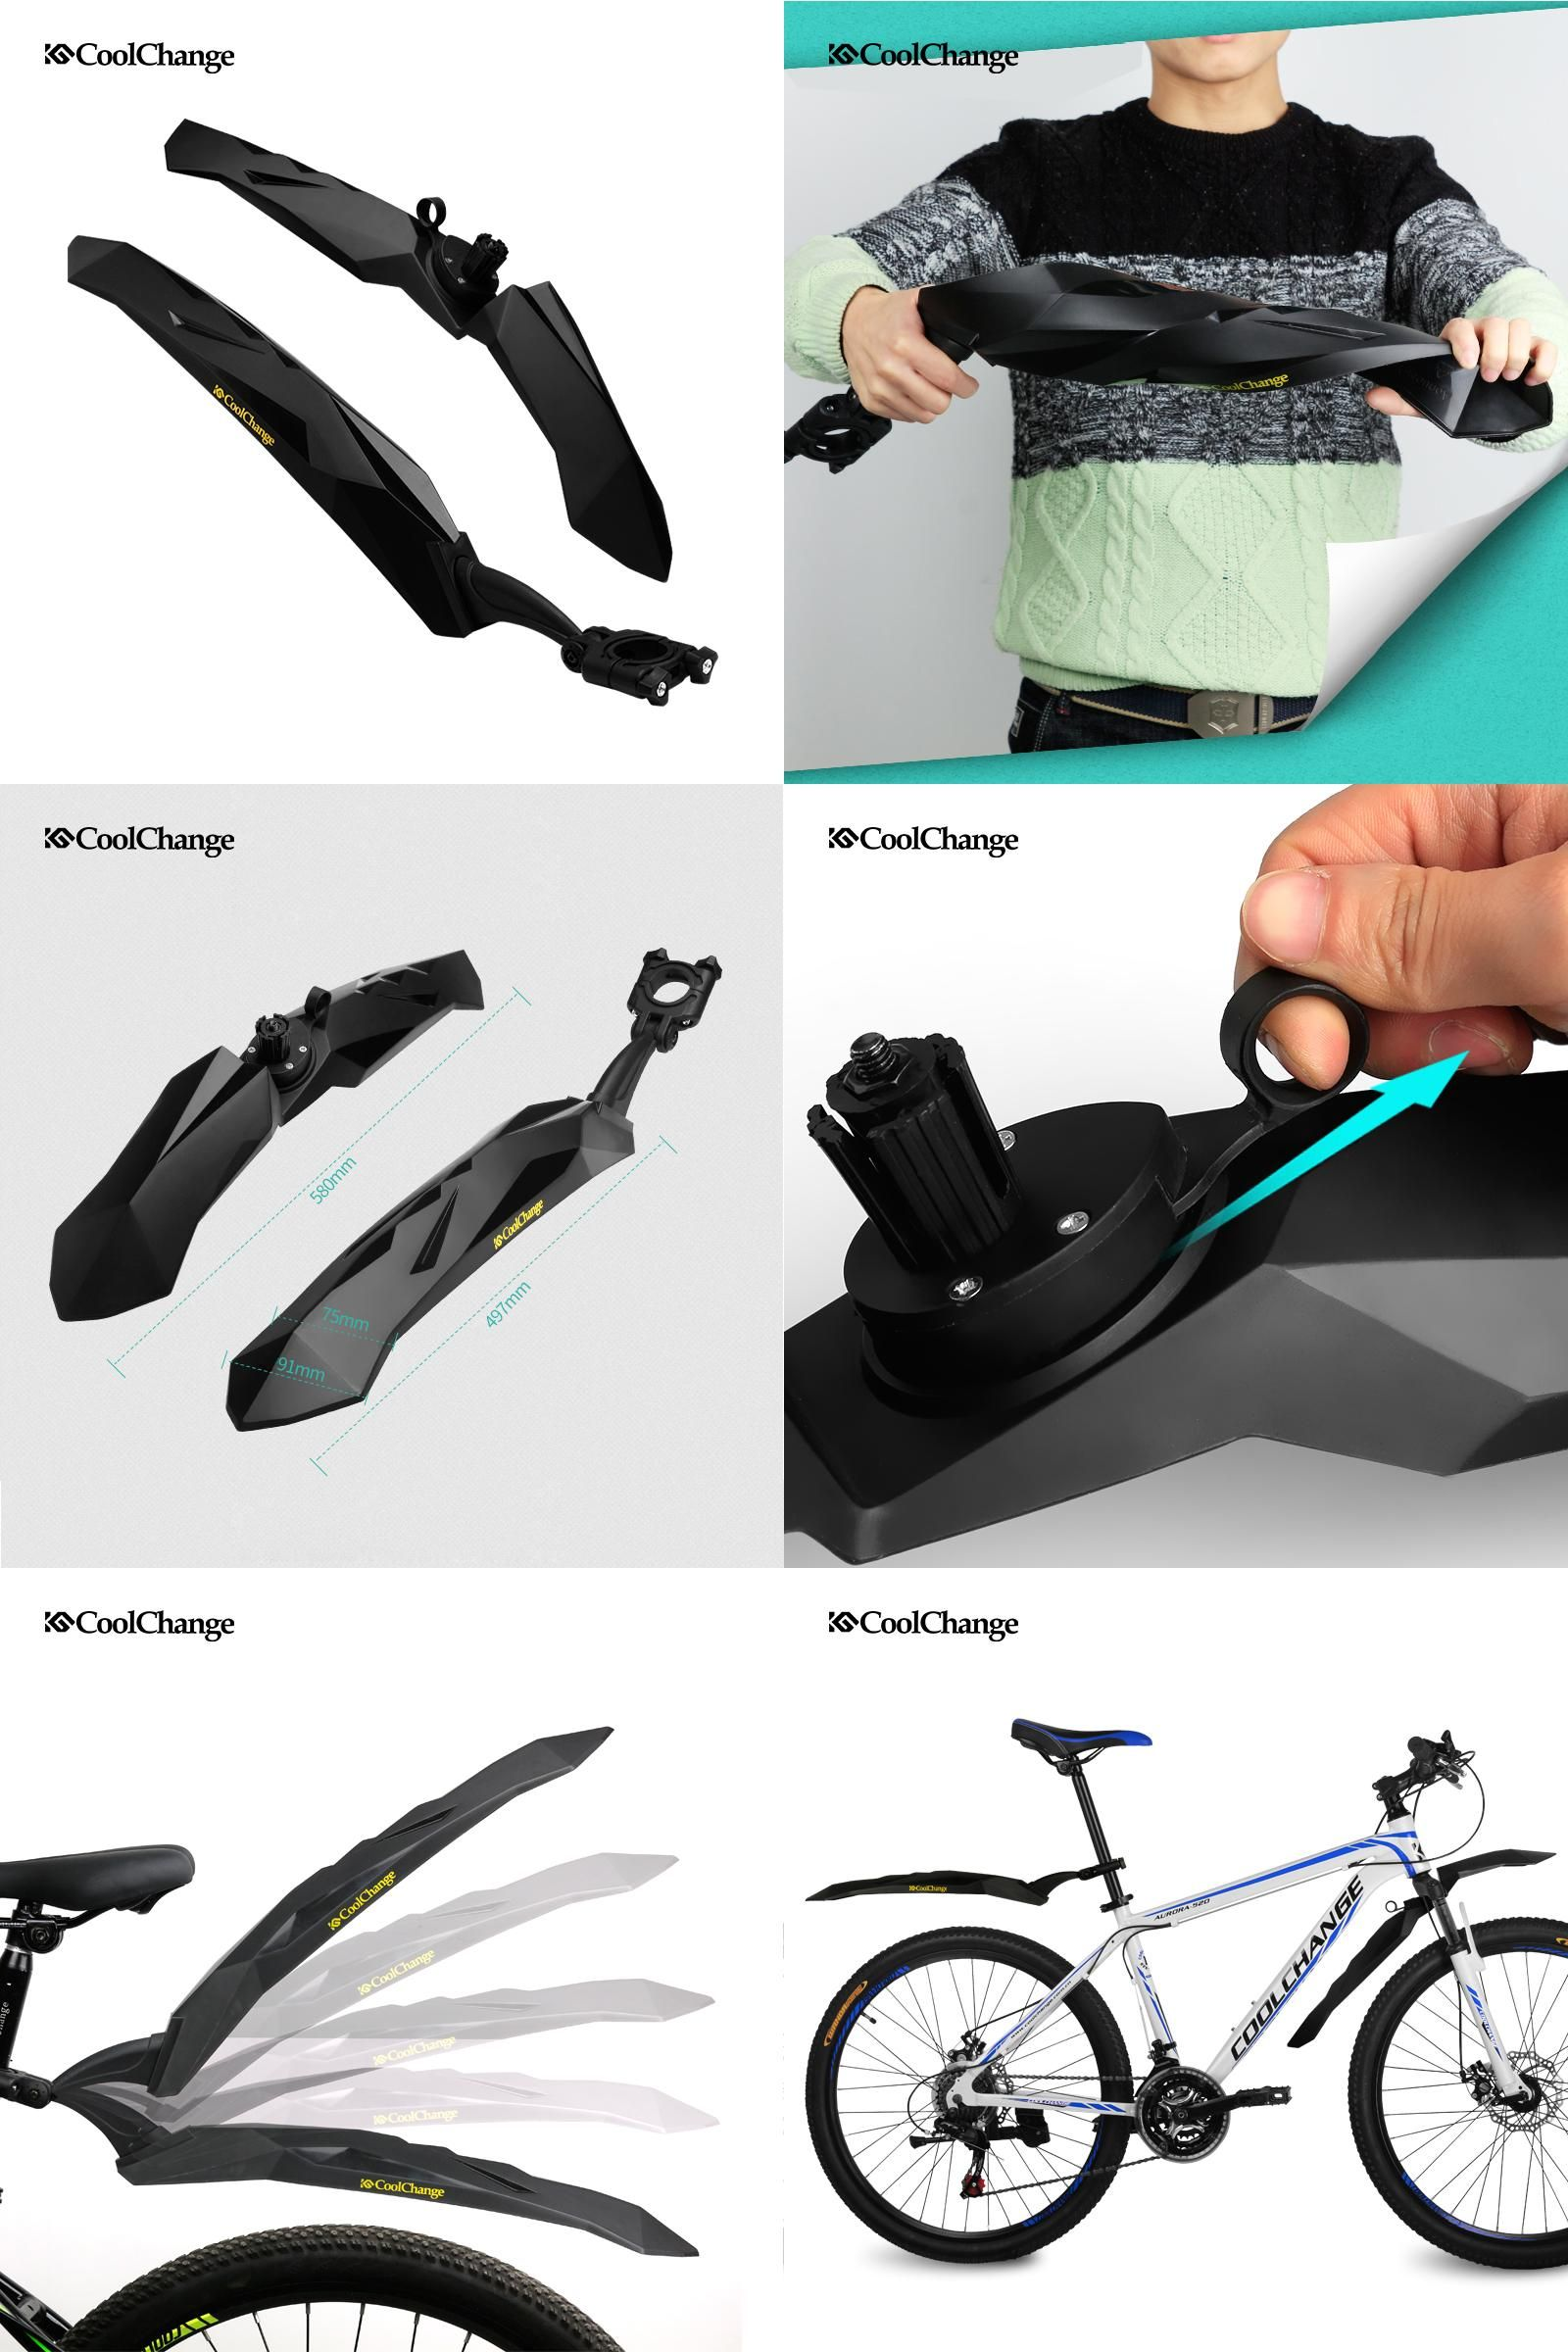 1a3154e4225 [Visit to Buy] 2017 CoolChange Bike Fender Parts 26 Bicycle MTB Front Rear Fenders  Cycling Flectional Mountain Mud Road Mudguard Accessories #Advertisement